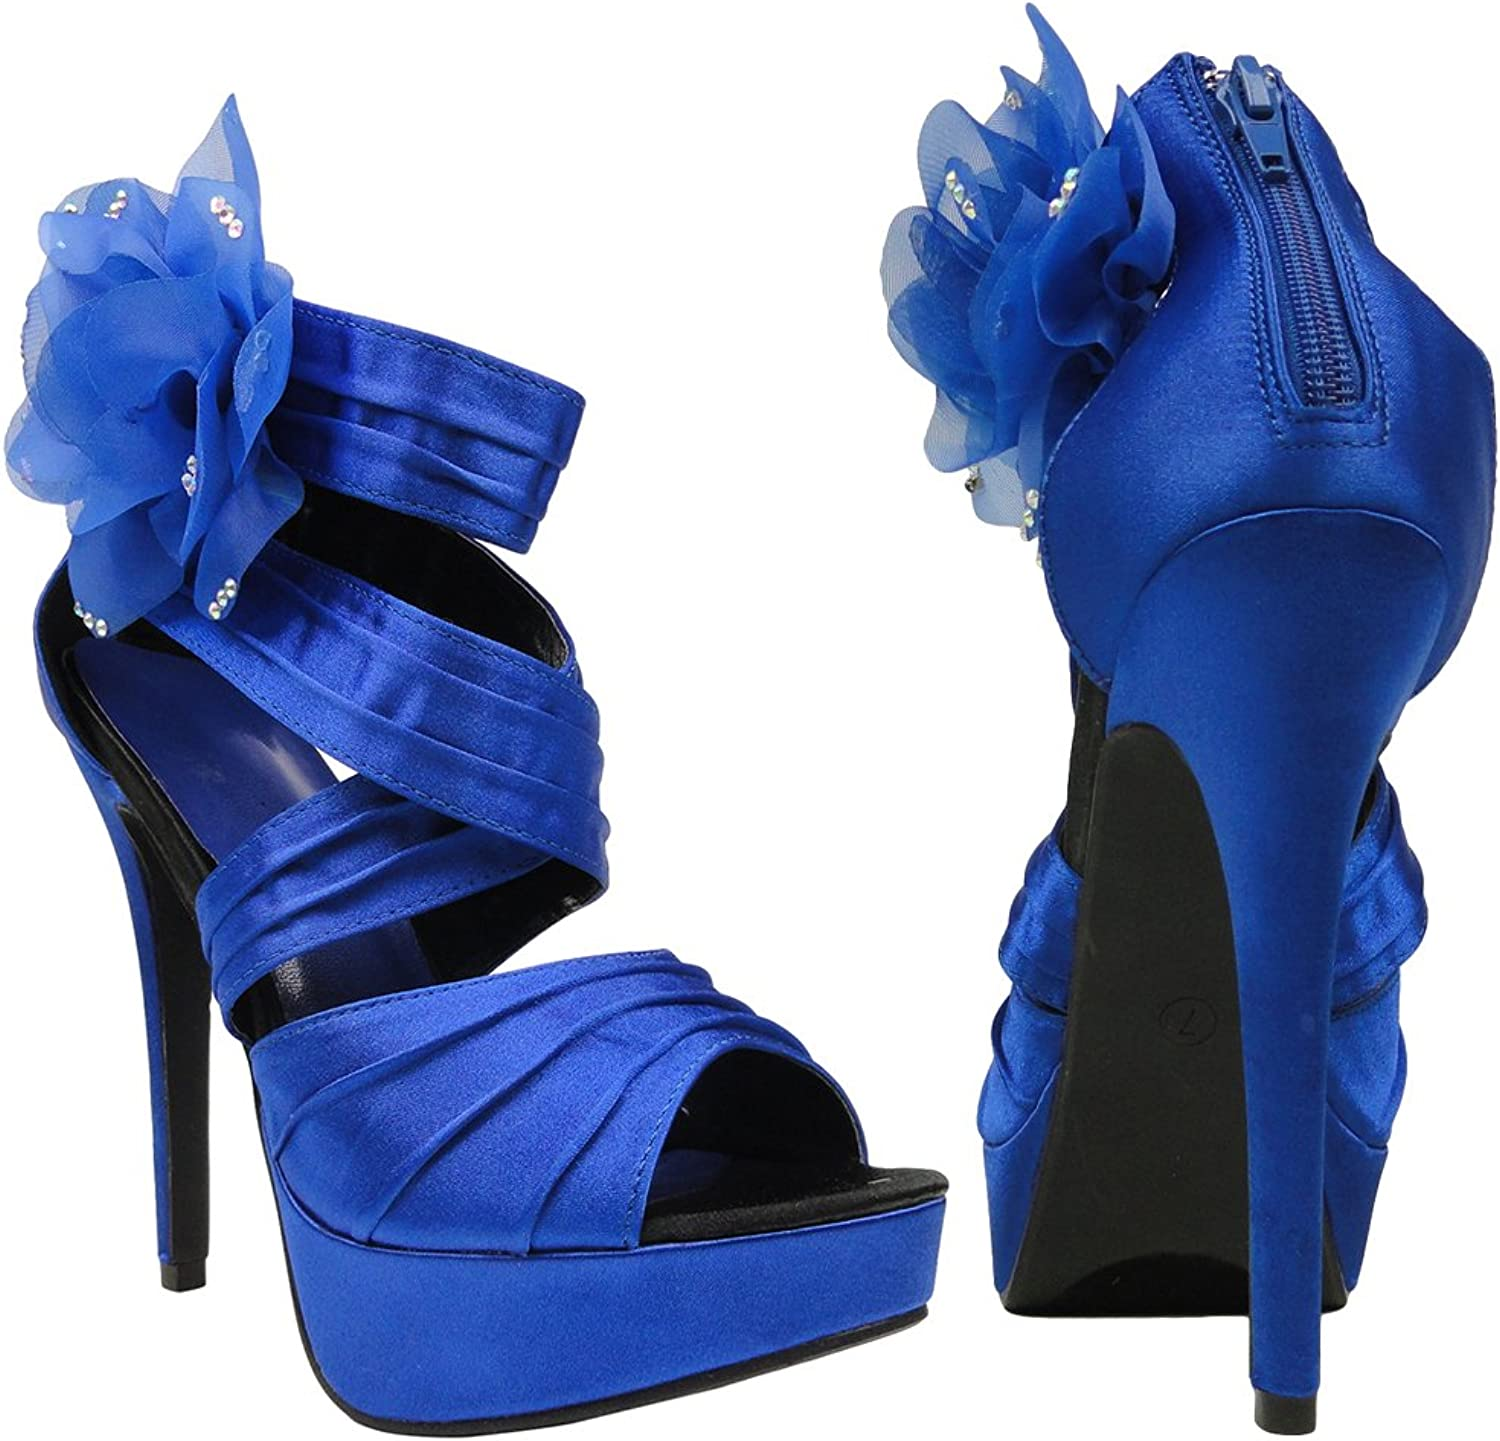 DS By KSC Womens Platform Sandals Strappy Ruched Satin Side Mesh Flower